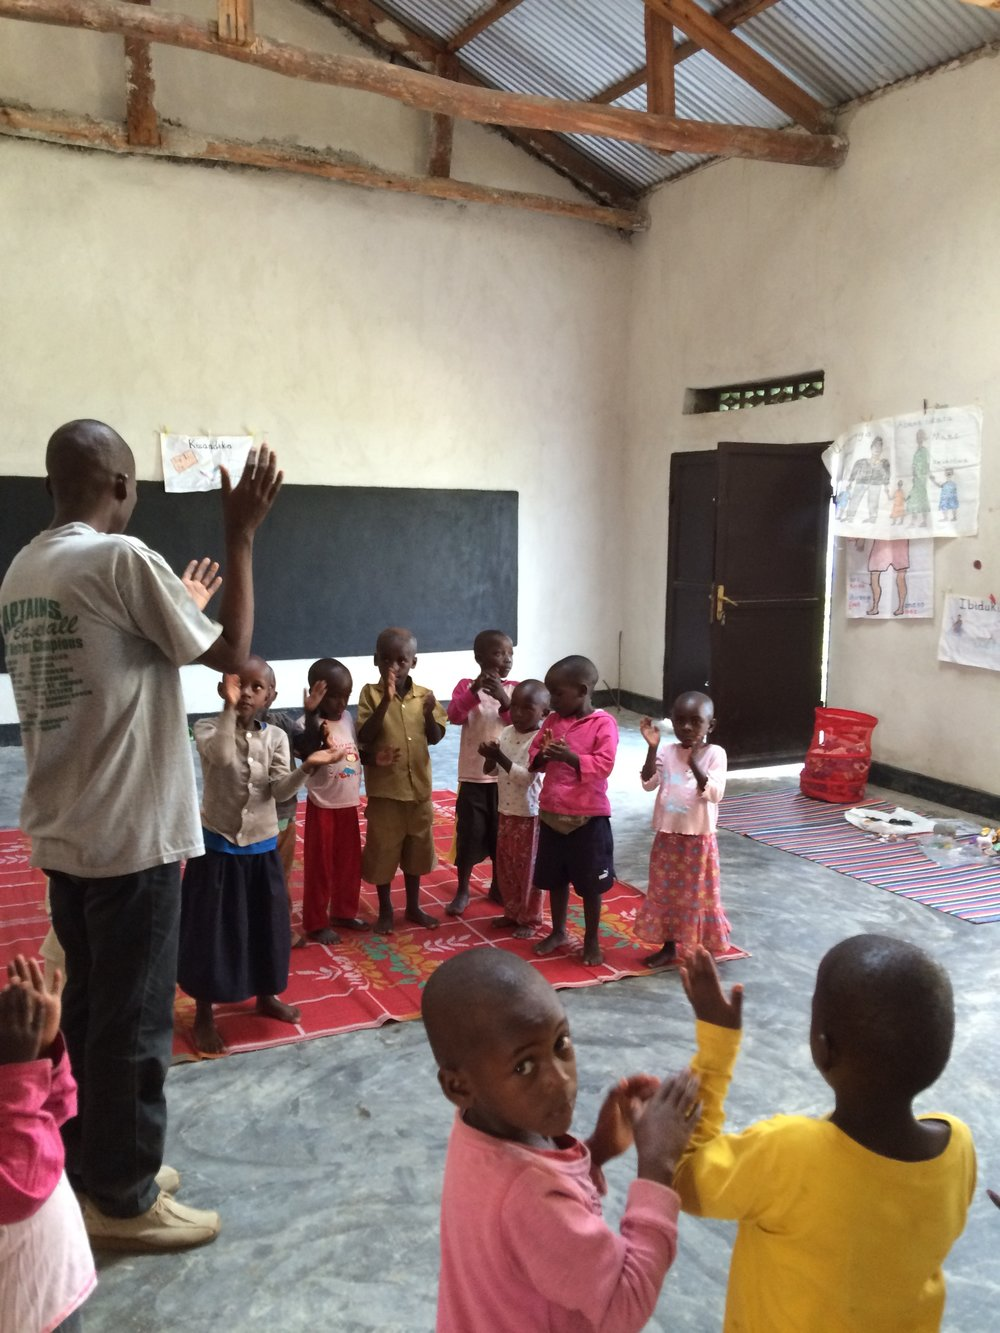 Headteacher Gabriel helps the children with their singing games.